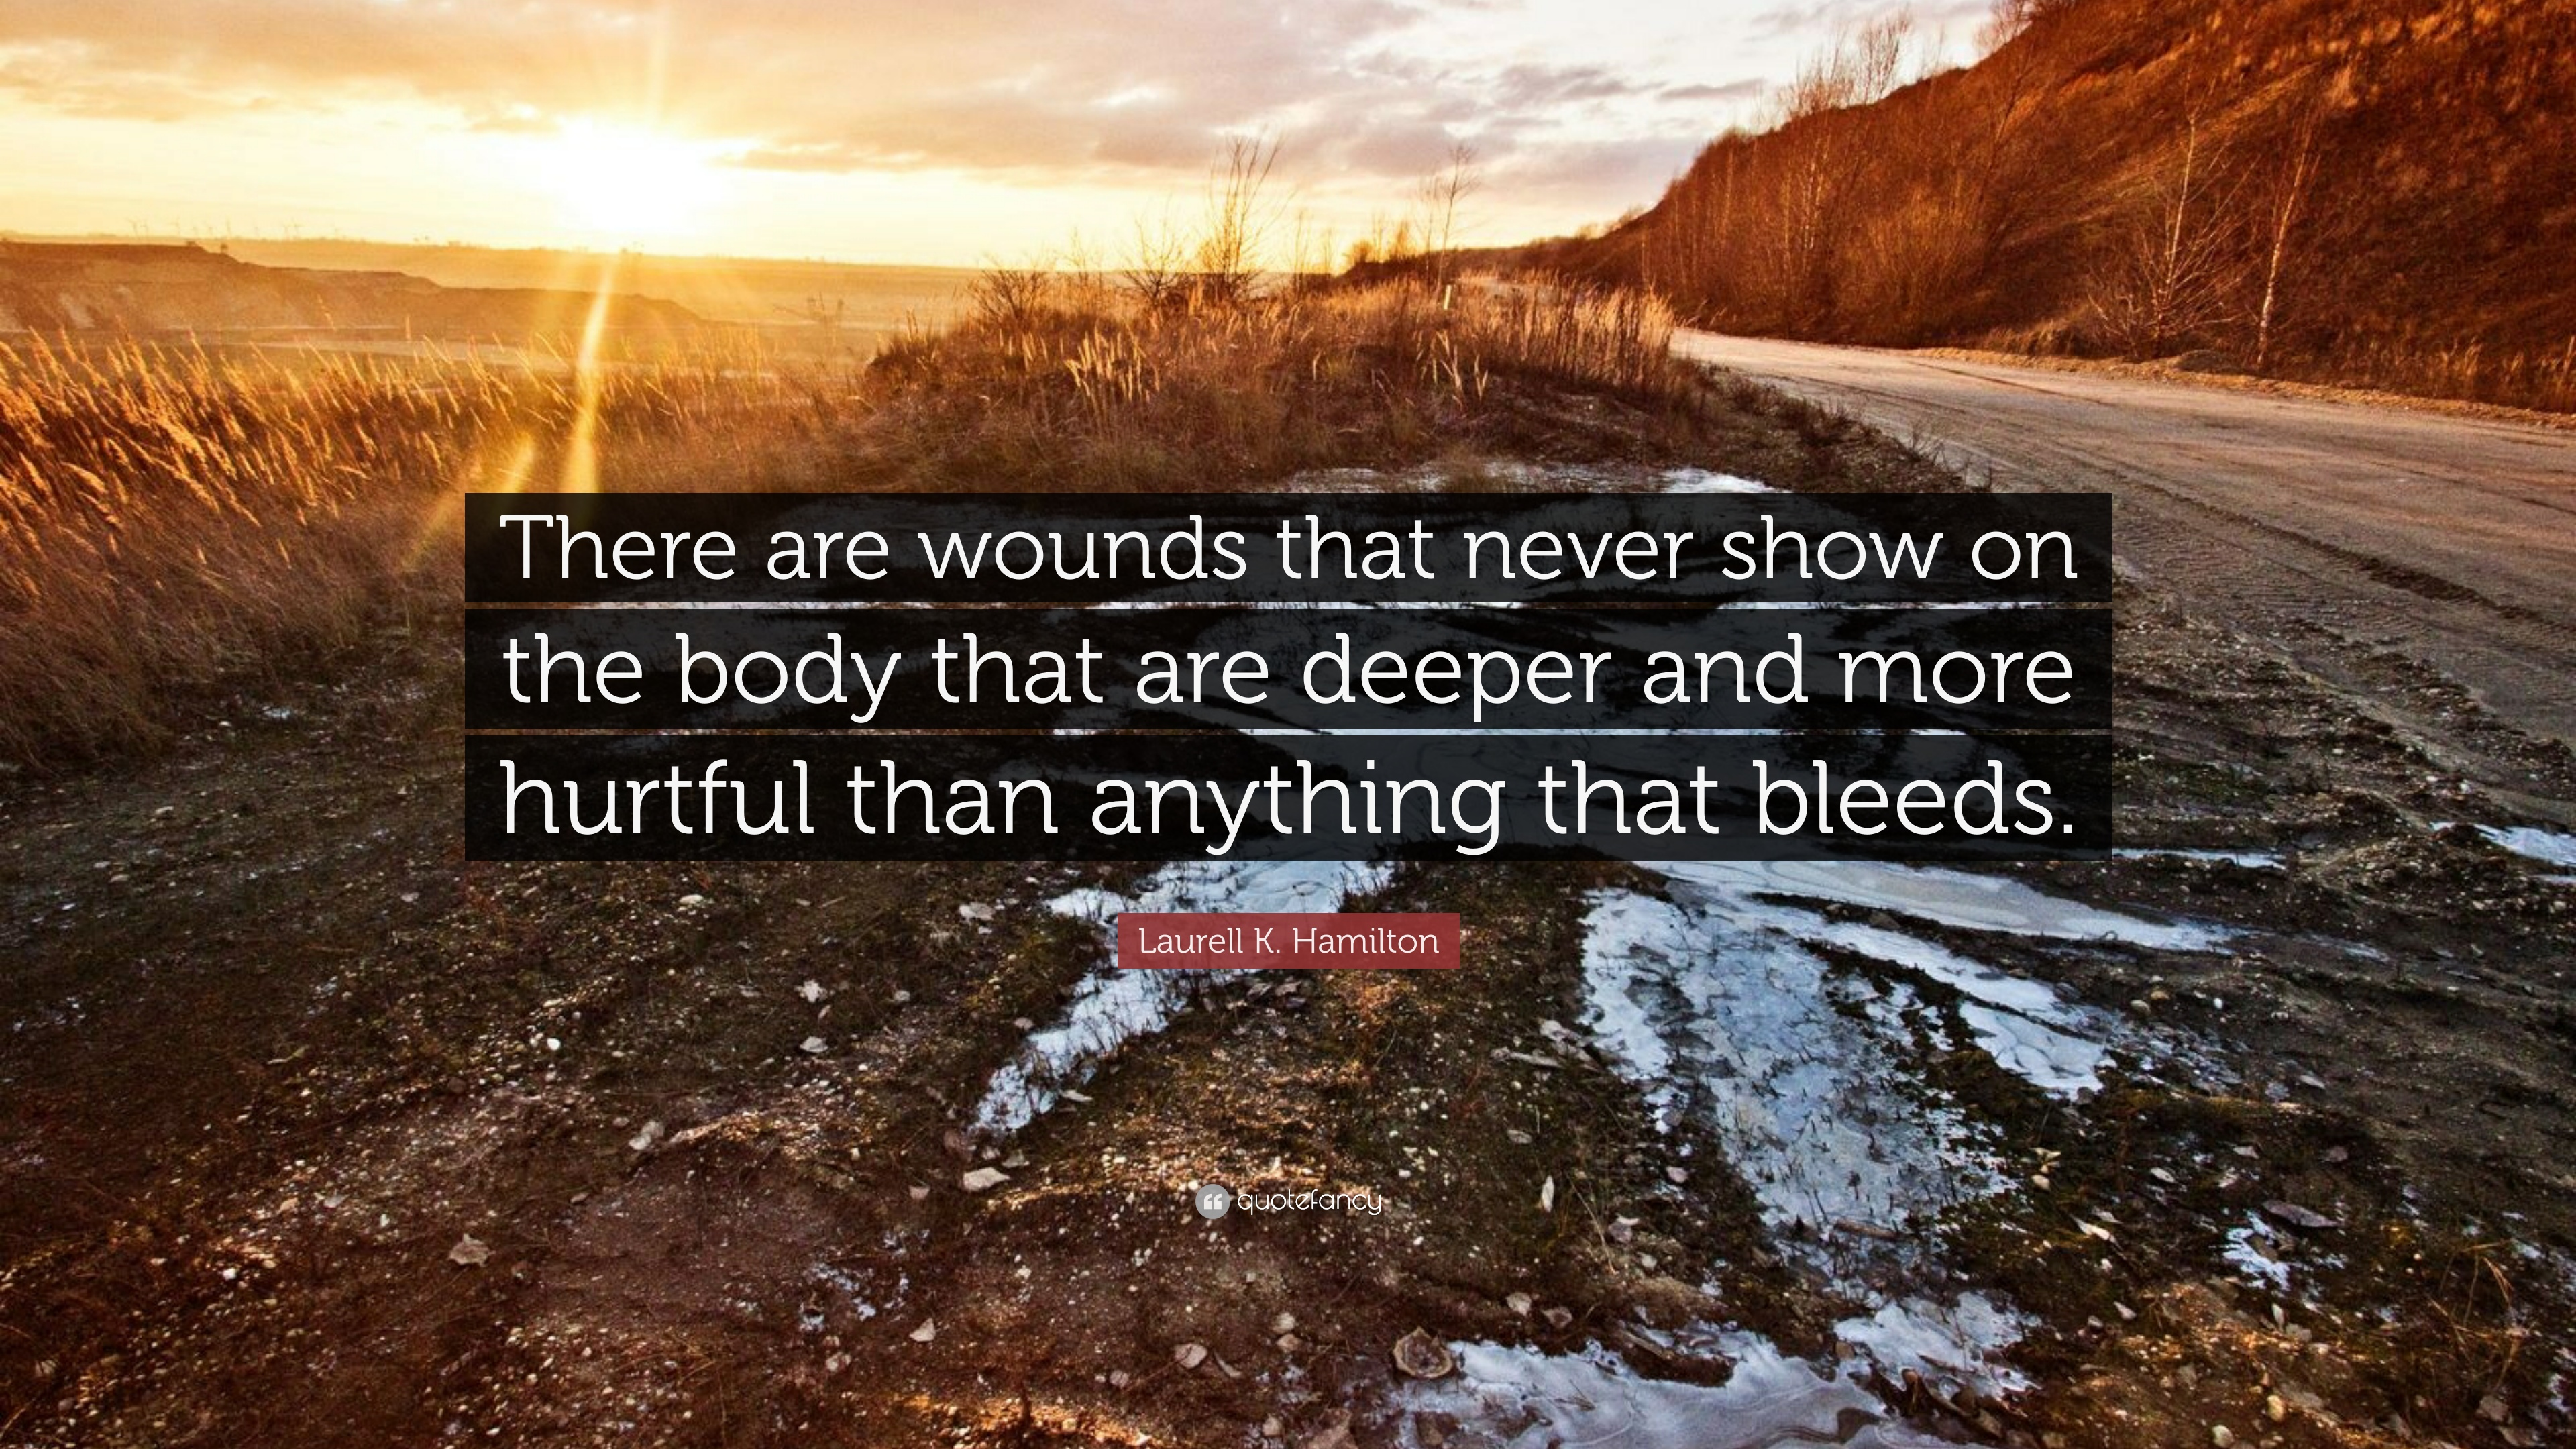 There are wounds that never show on the body that are deeper and more hurtful than anything that bleeds. Laurell K. Hamilton. (3840×2160)